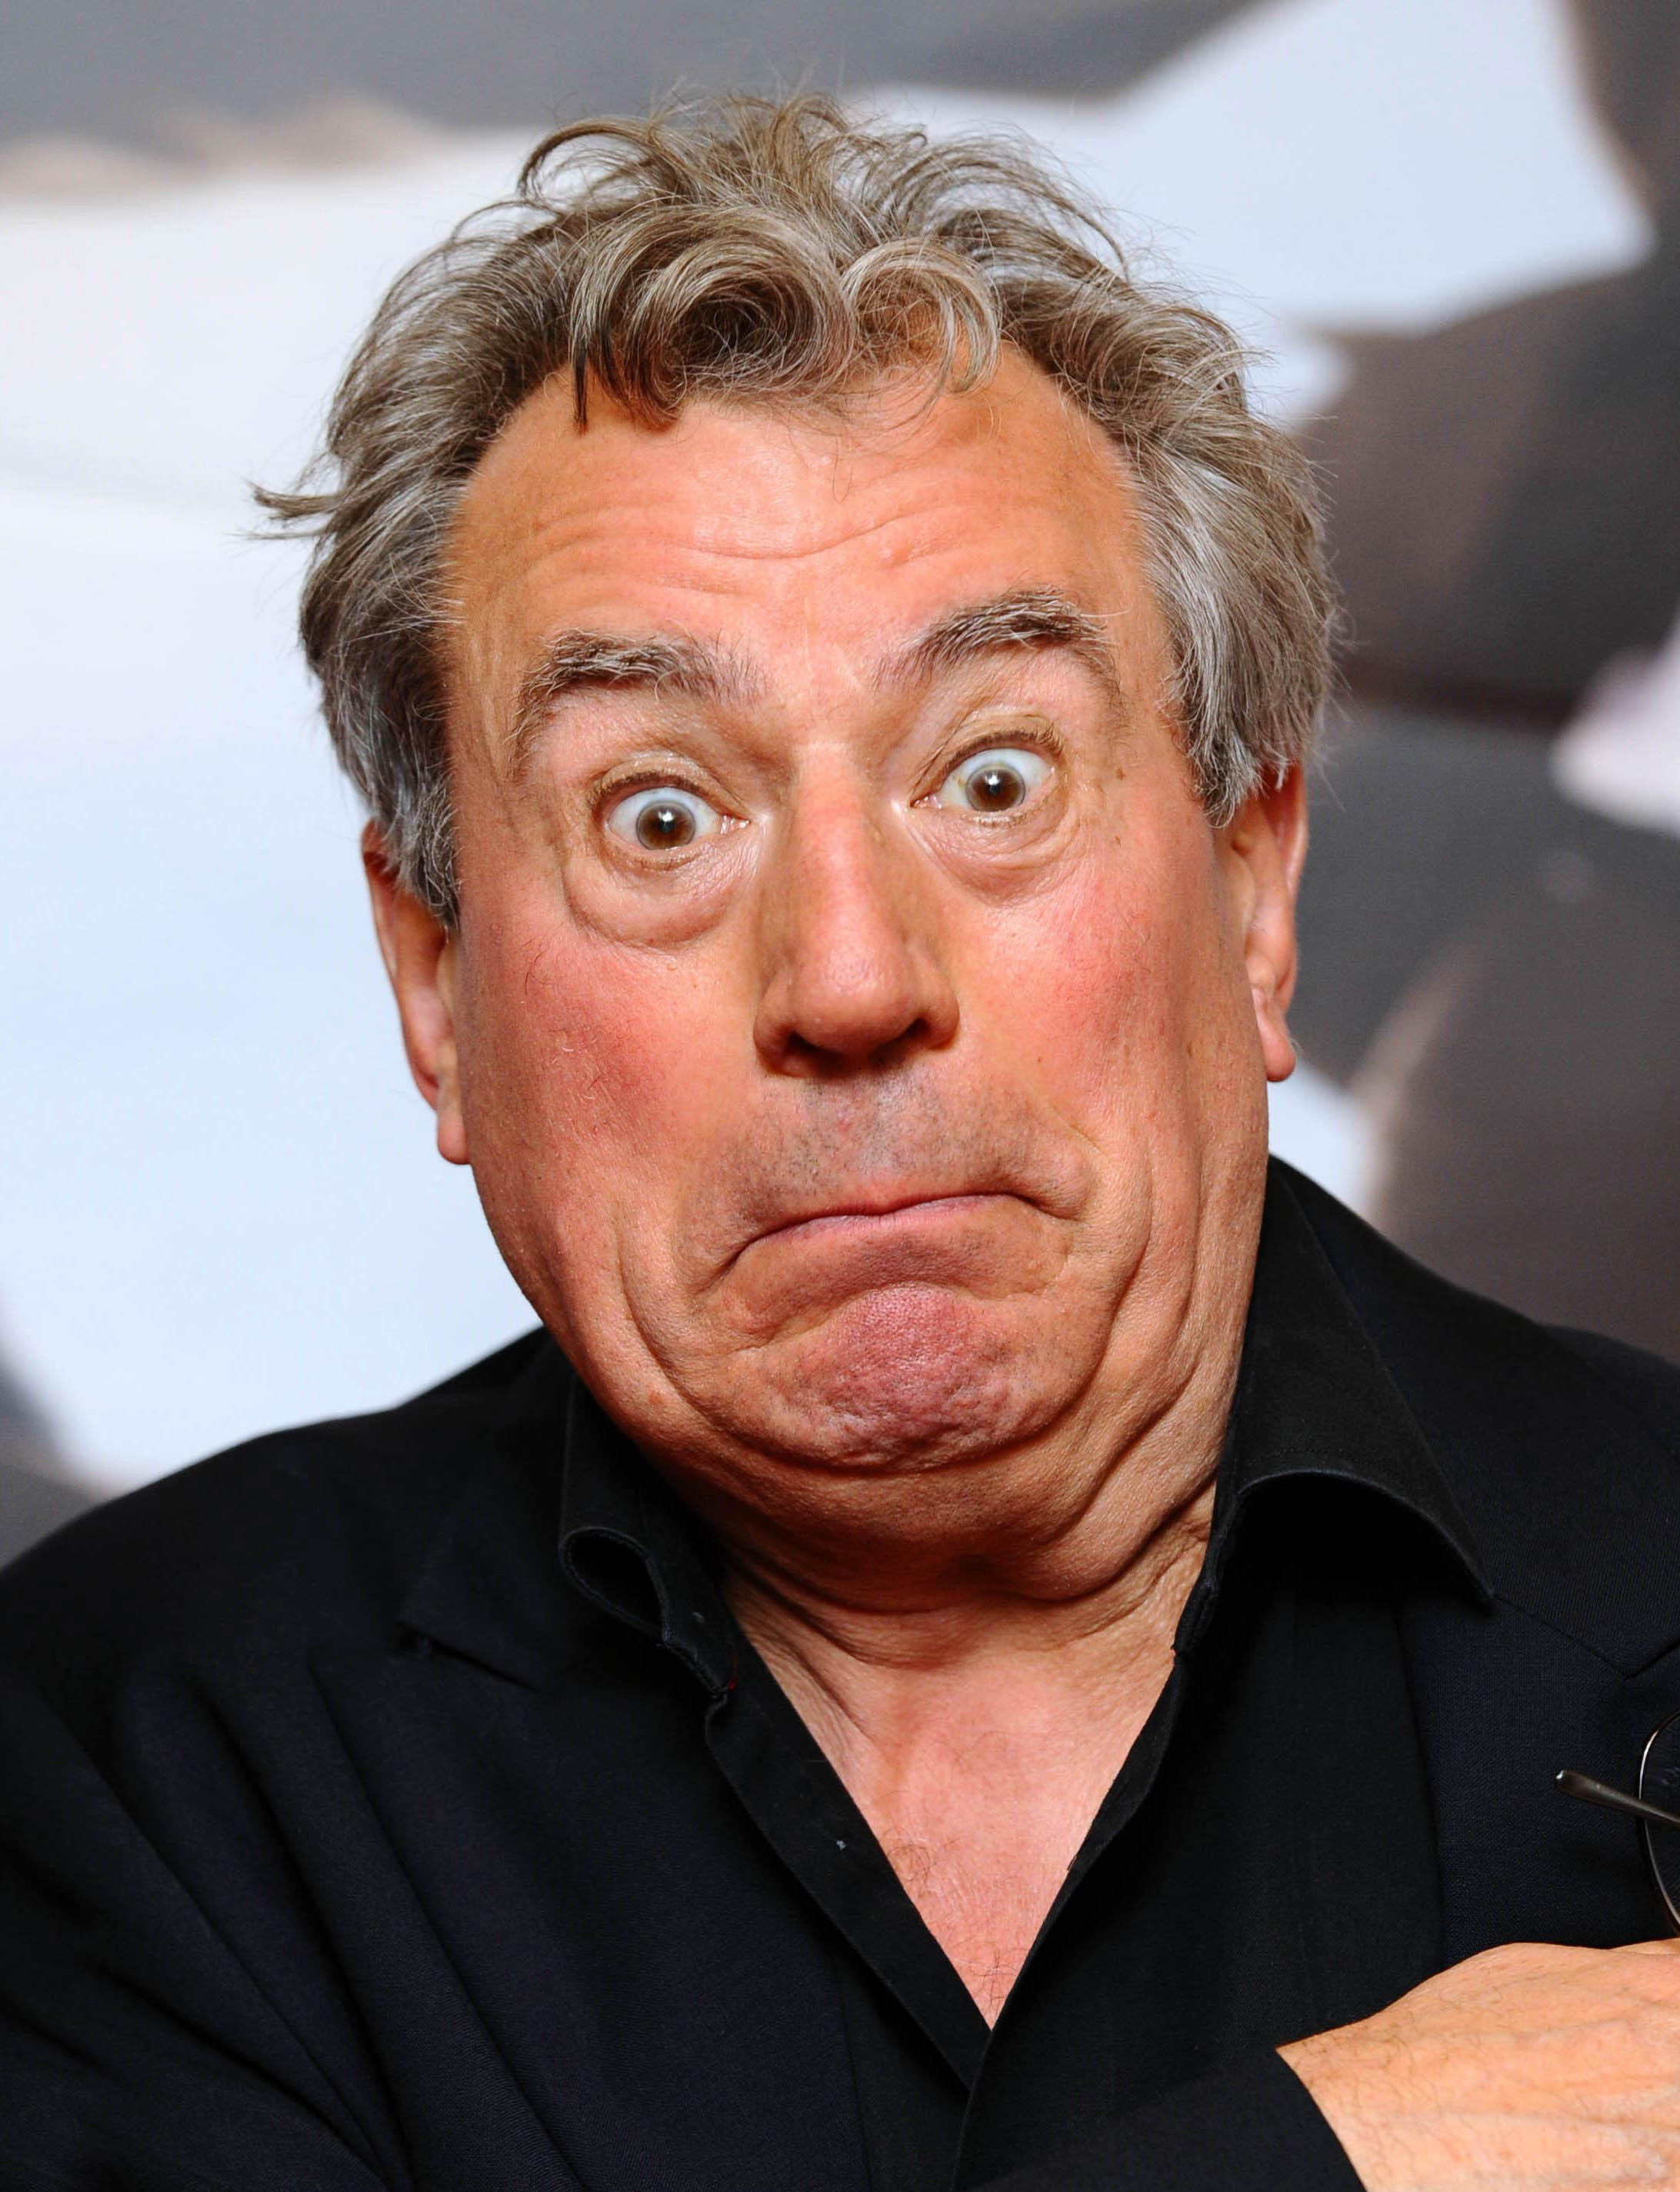 Terry Jones has been remembered for his unique sense of humour after passing away aged 77